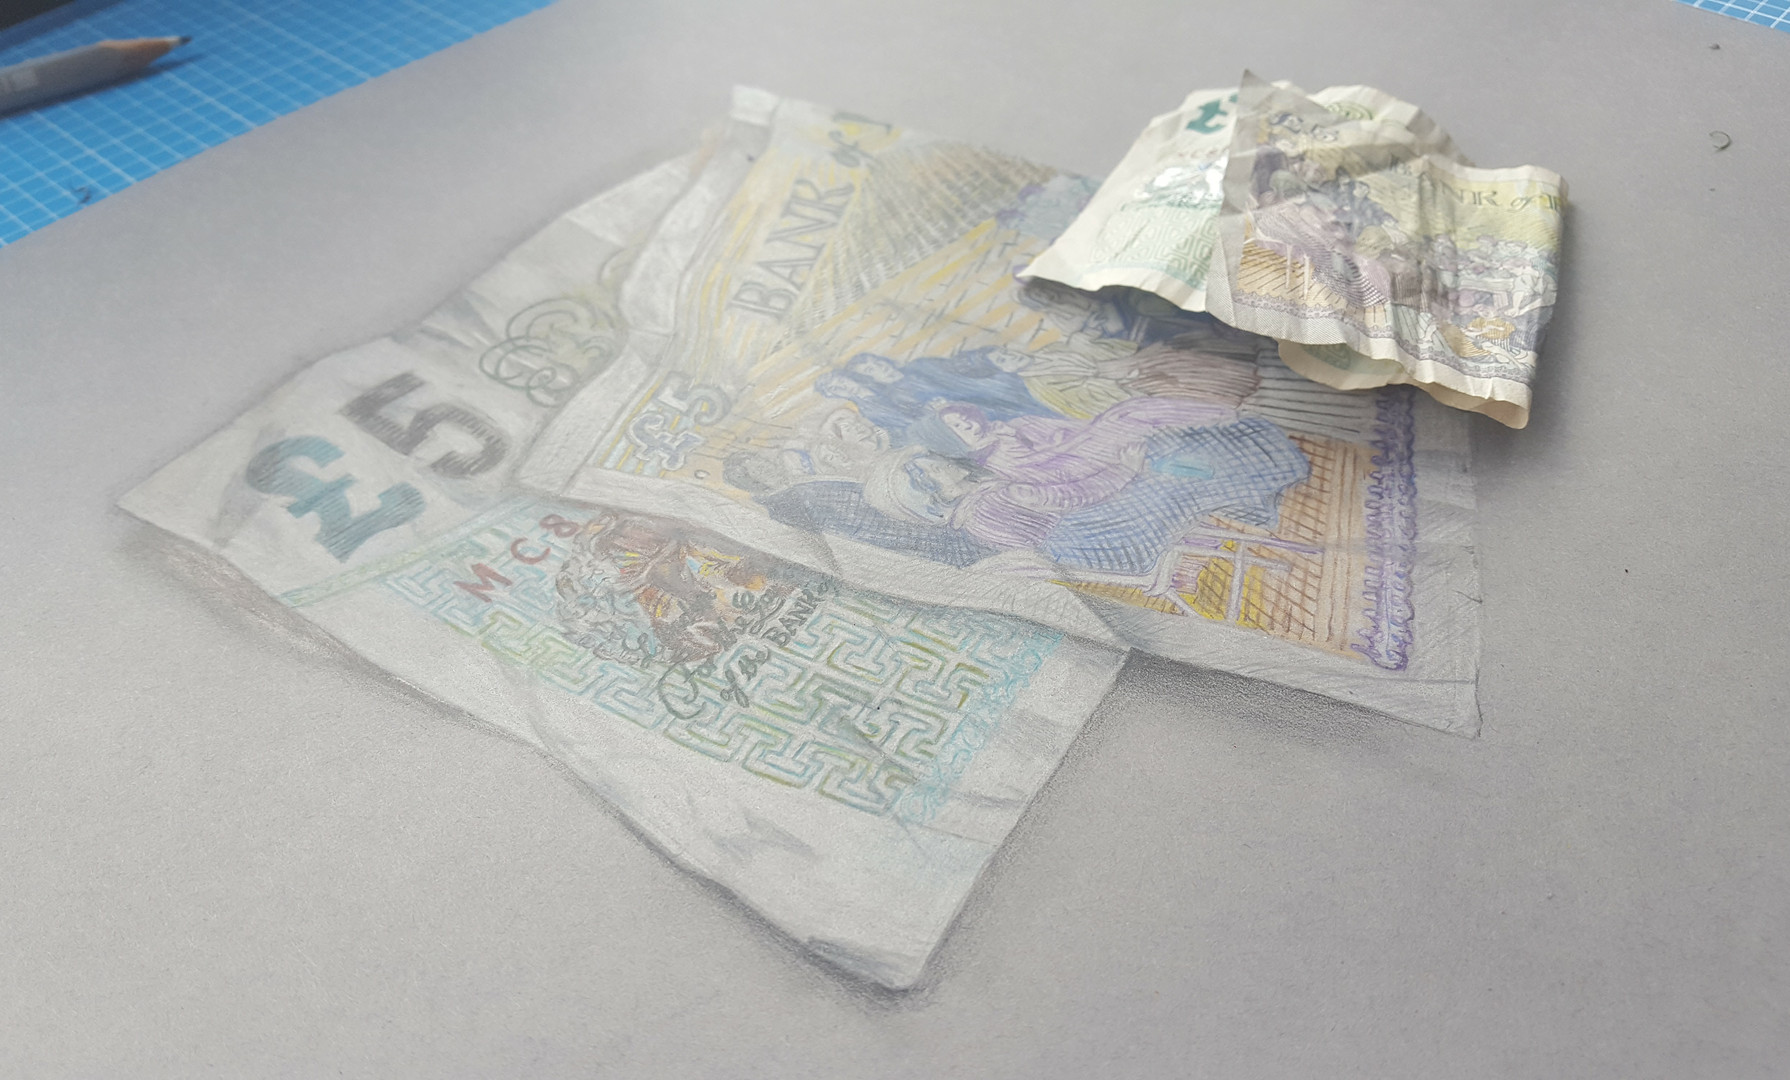 Finished drawing next to the same £5 note.